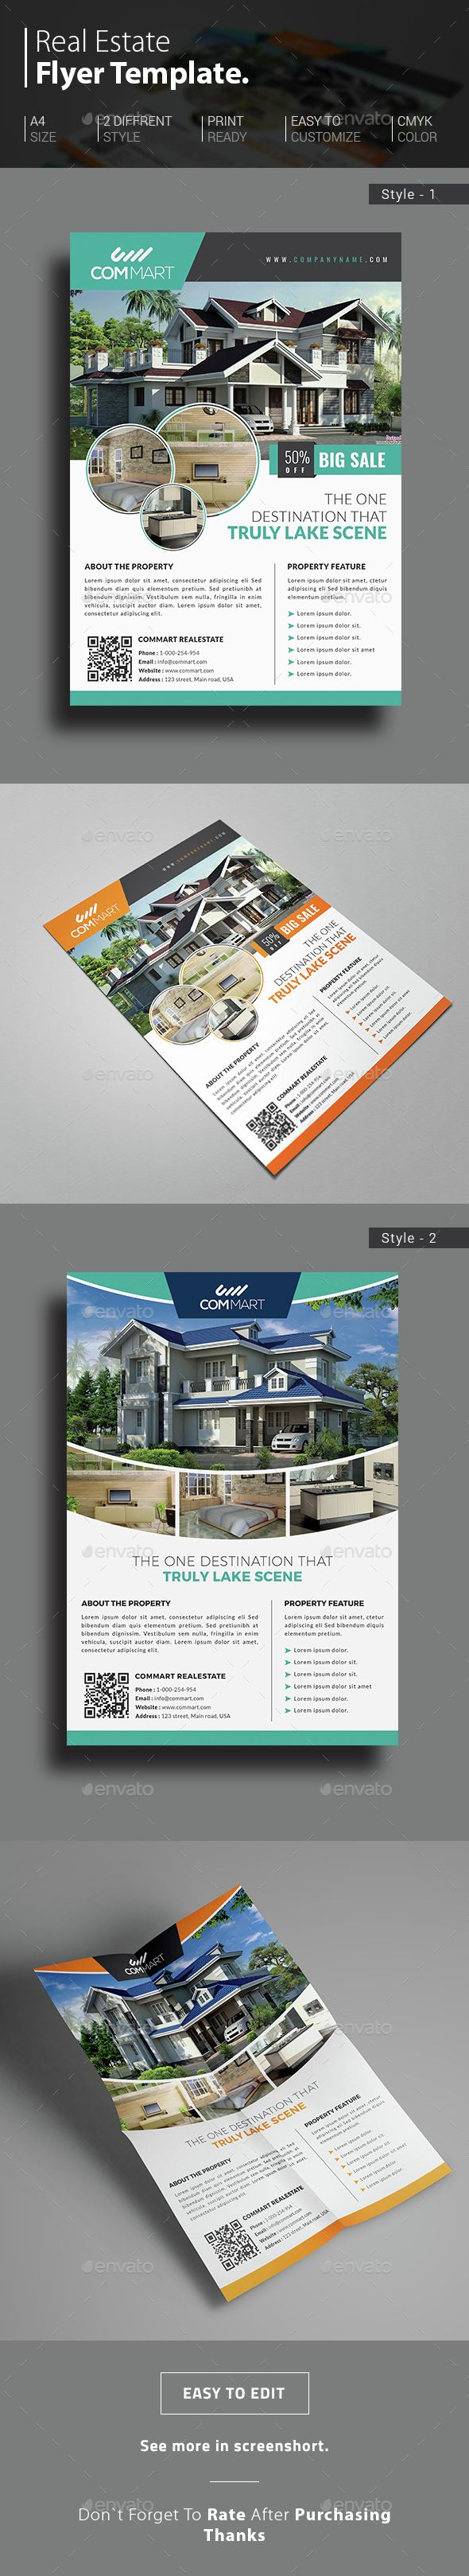 Real Estate Flyer Template, fully editable #OpenHouse #FlyerTemplate. #RealEstate